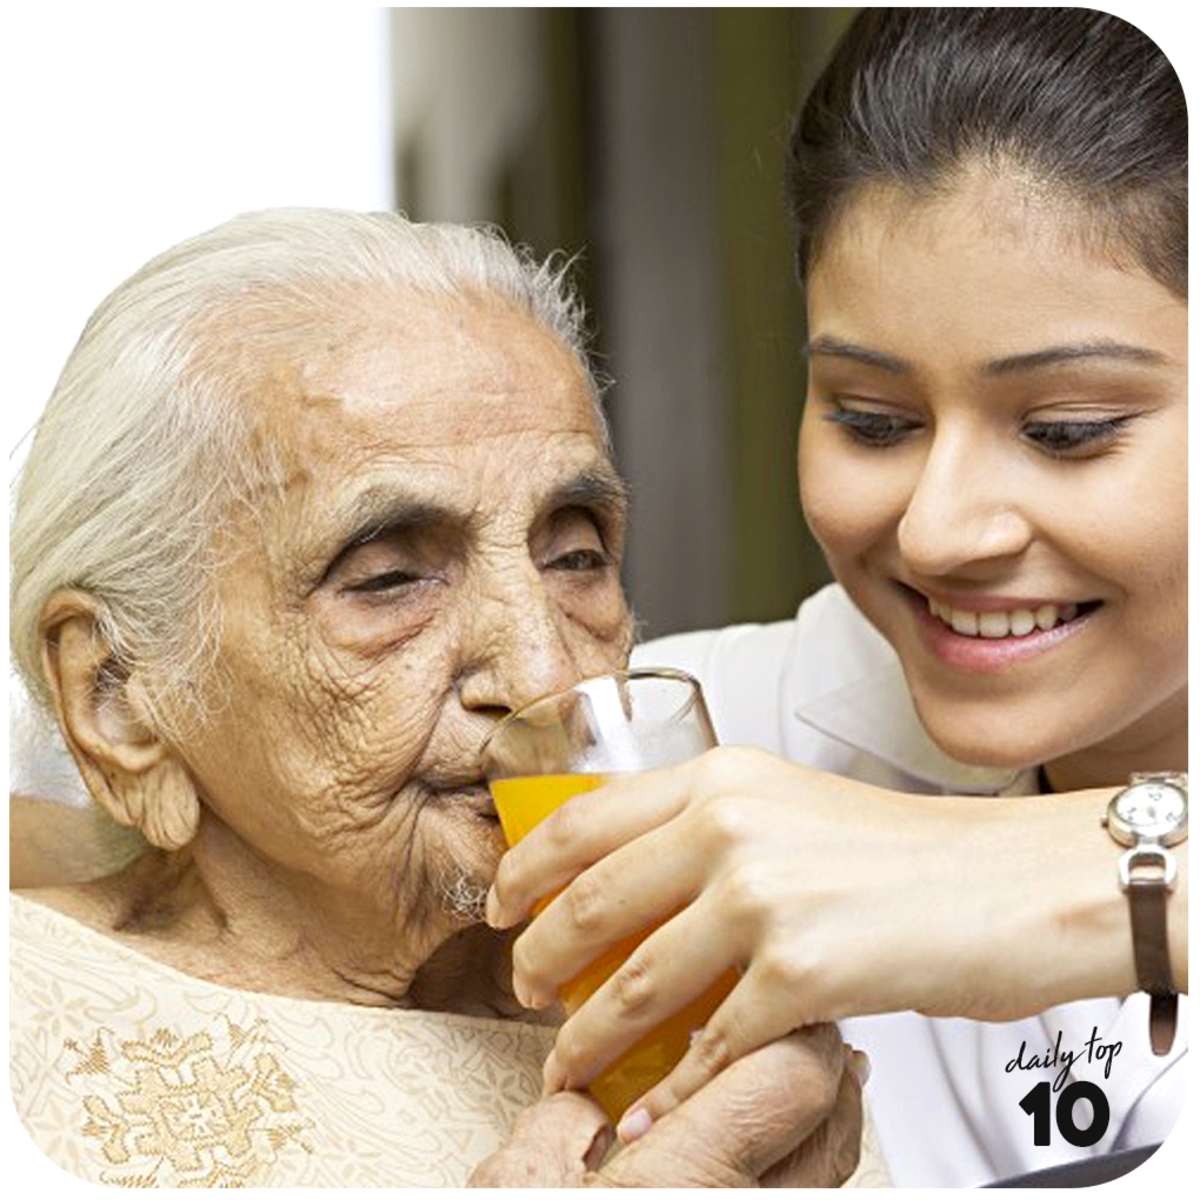 You should lead by example in respecting and taking care of the elderly.